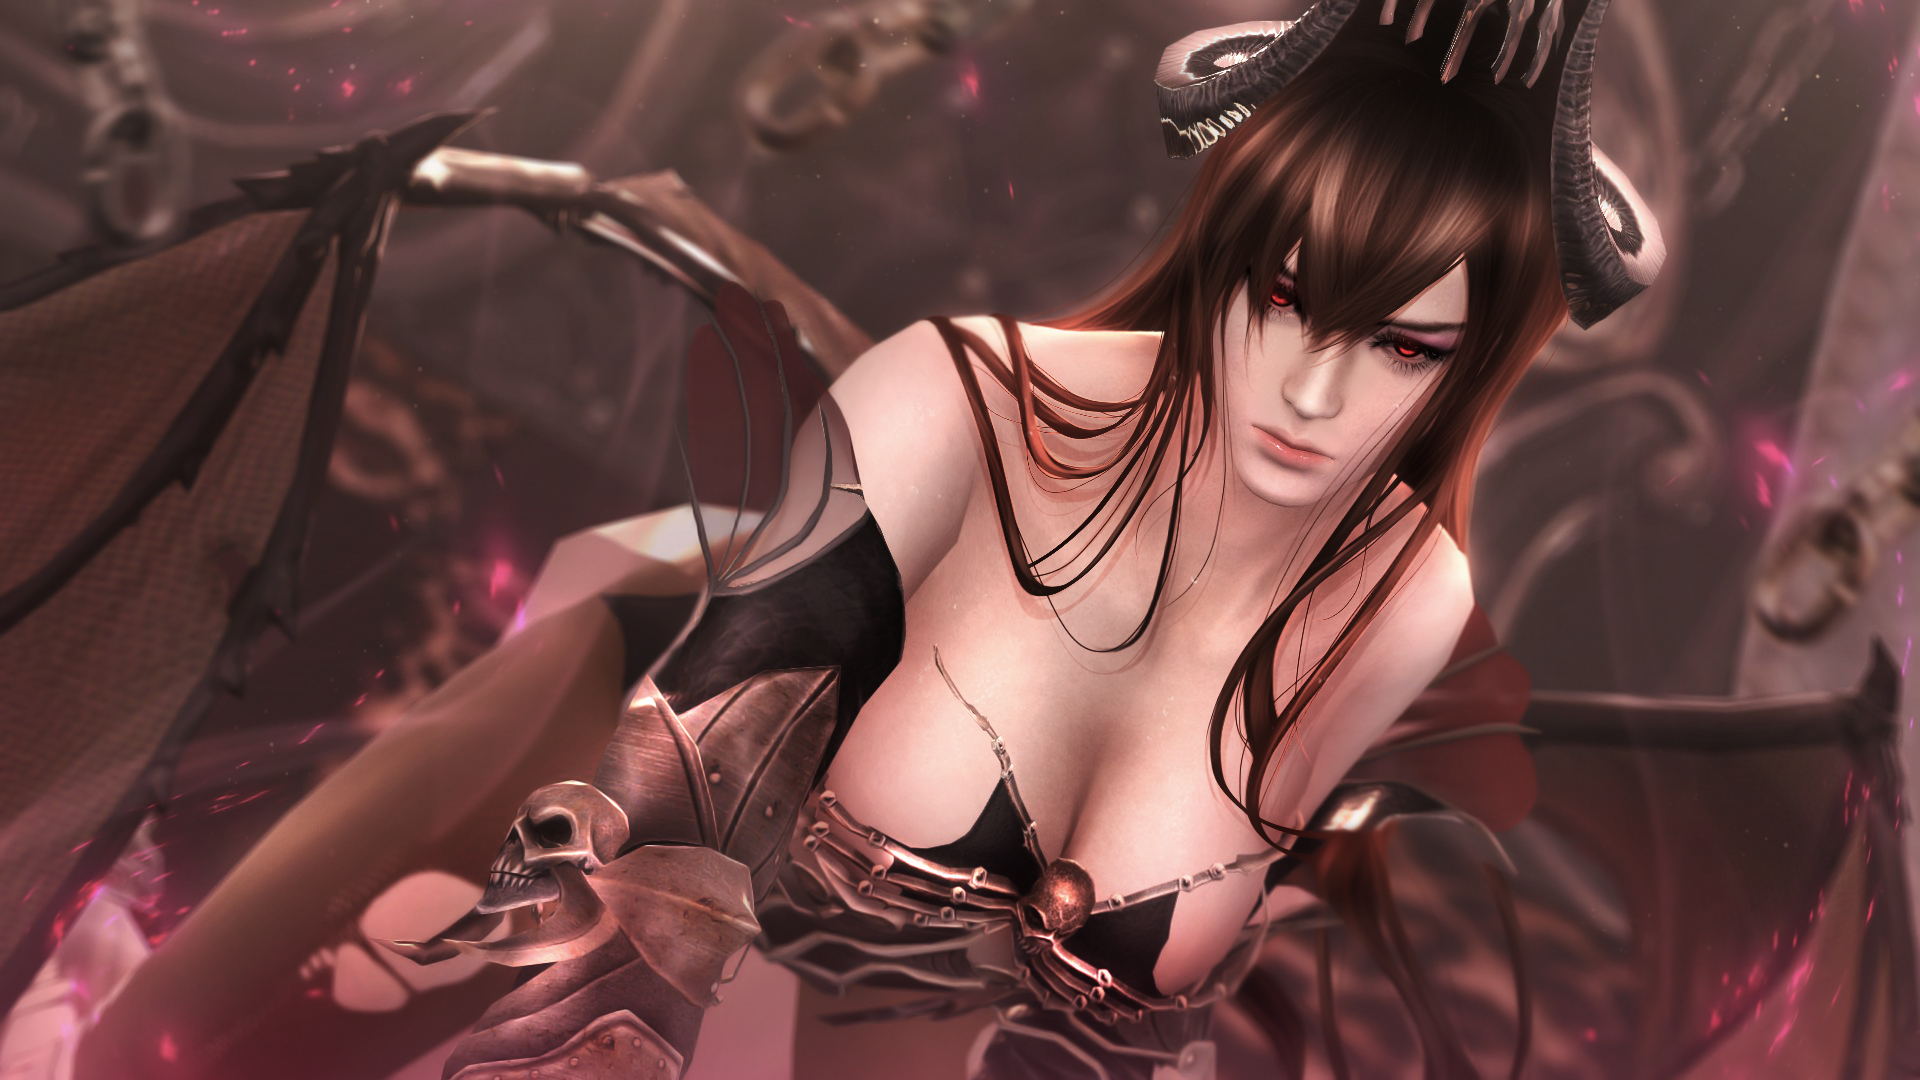 succubus_queen_3_by_sculp2-dbq9bhj.jpg